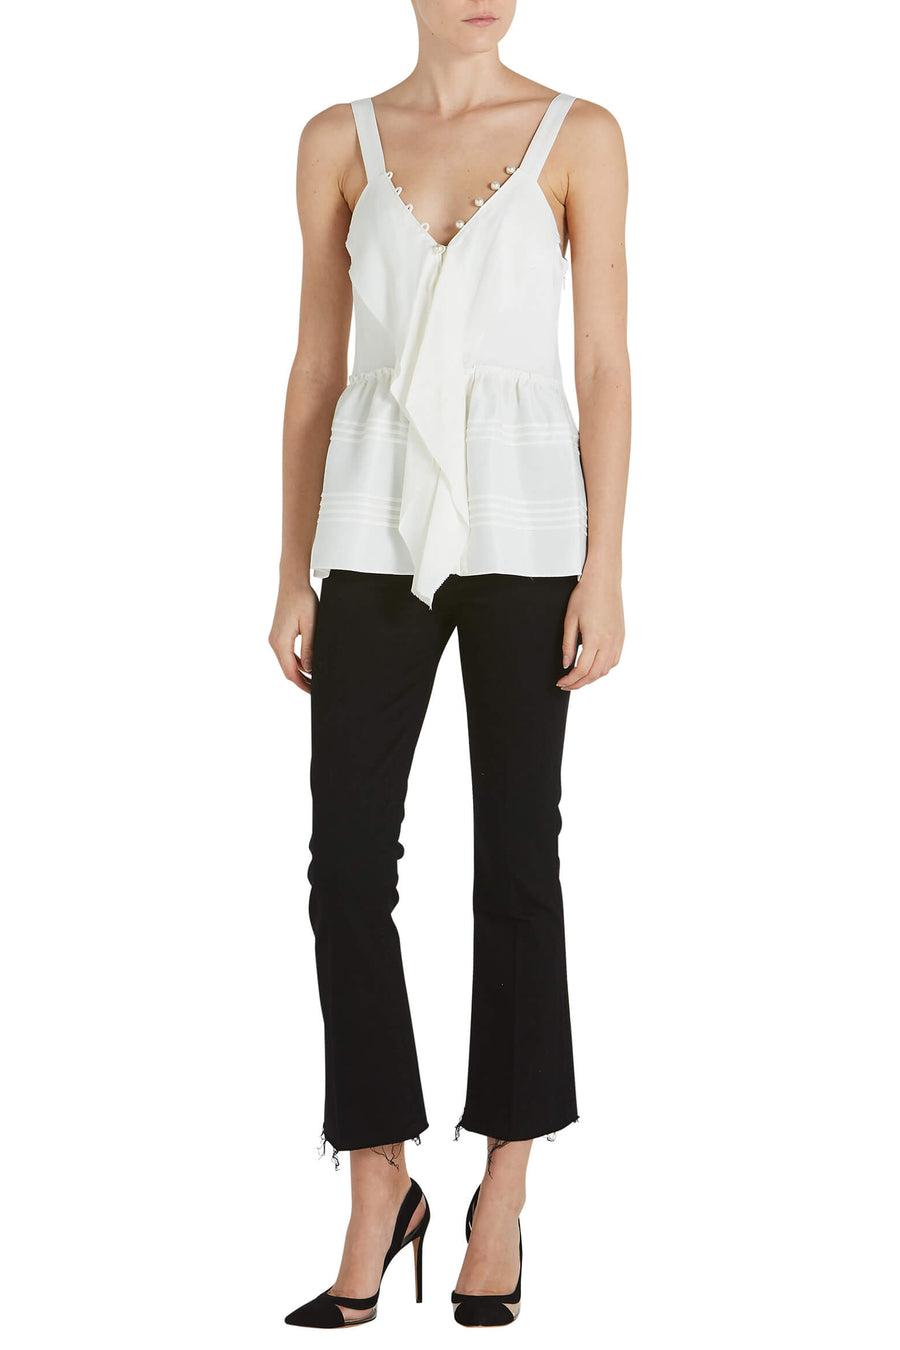 3.1 Phillip Lim Satin Cami With Pearls from The New Trend